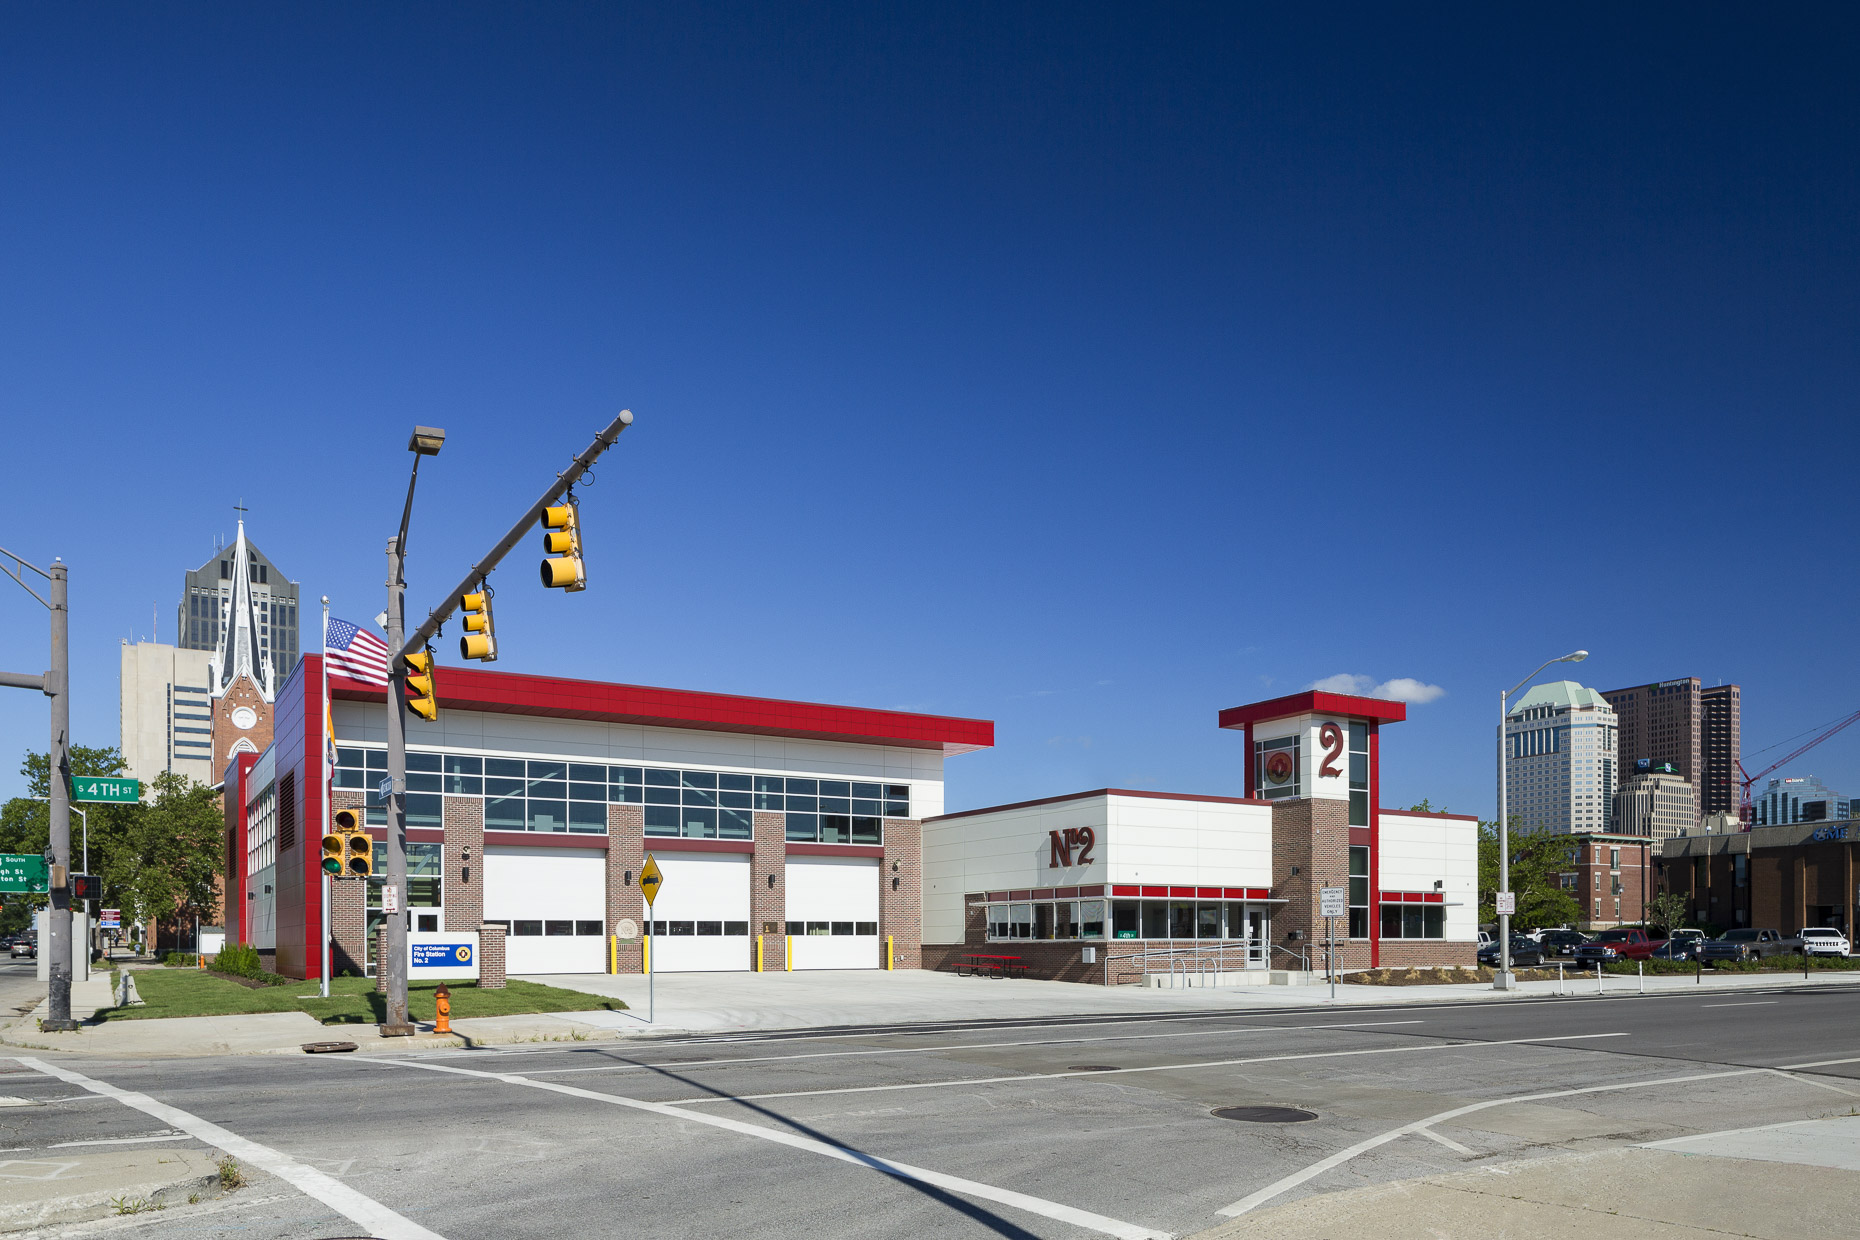 Columbus Fire Department Fire Station No.2 by DLZ & Robertson Construction photographed by Lauren K Davis based in Columbus, Ohio